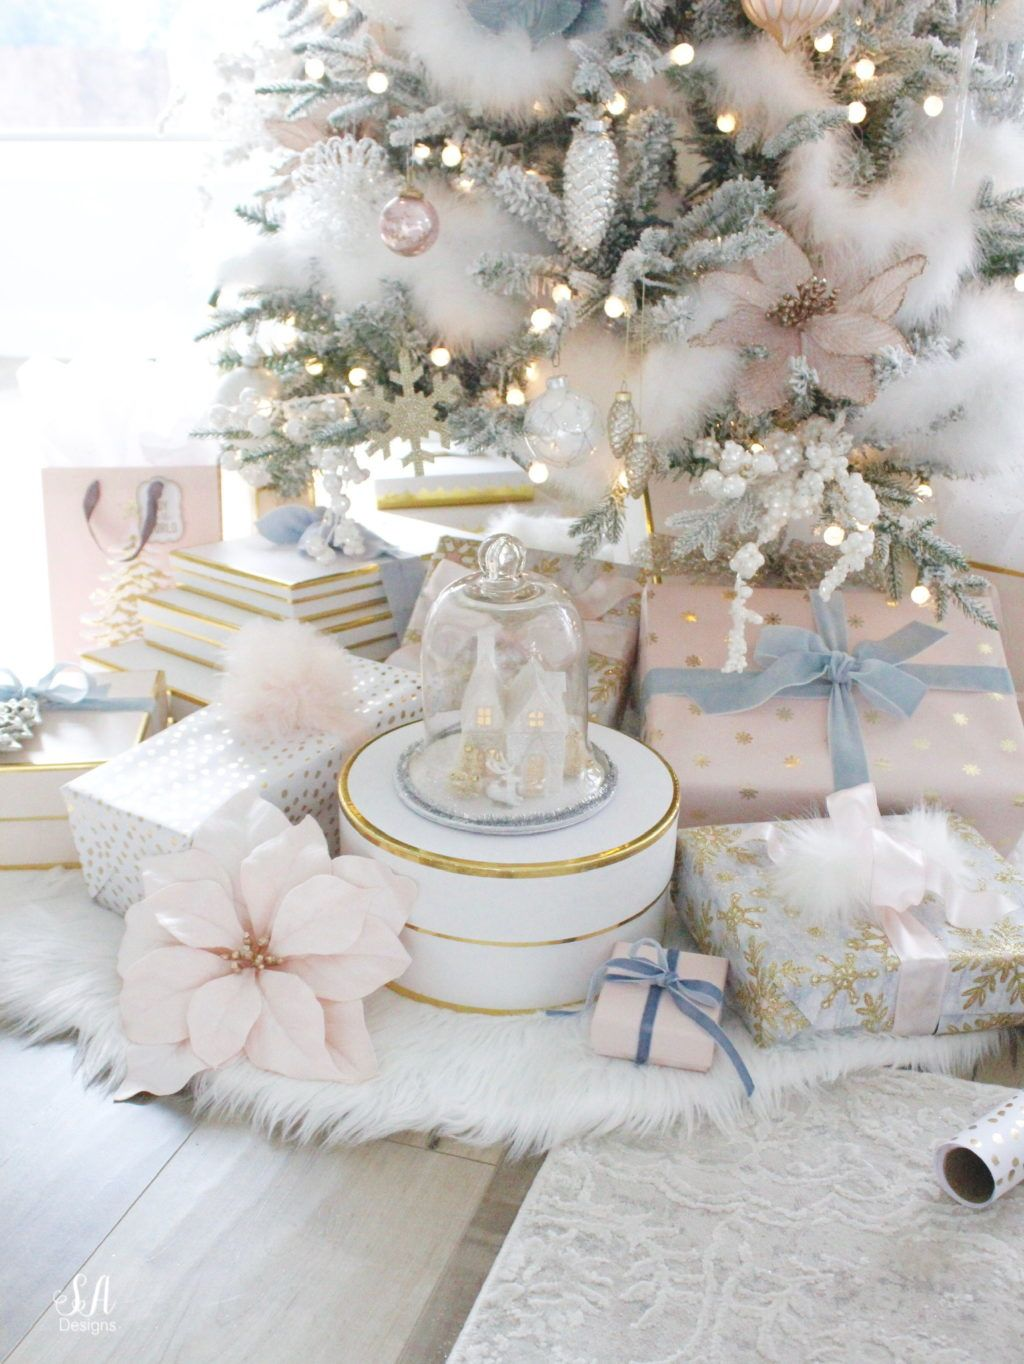 Whimsical Glam Christmas Living Room In Pastels Summer Adams Nutcracker Christmas Tree Pastel Christmas Decor Pink Christmas Decorations